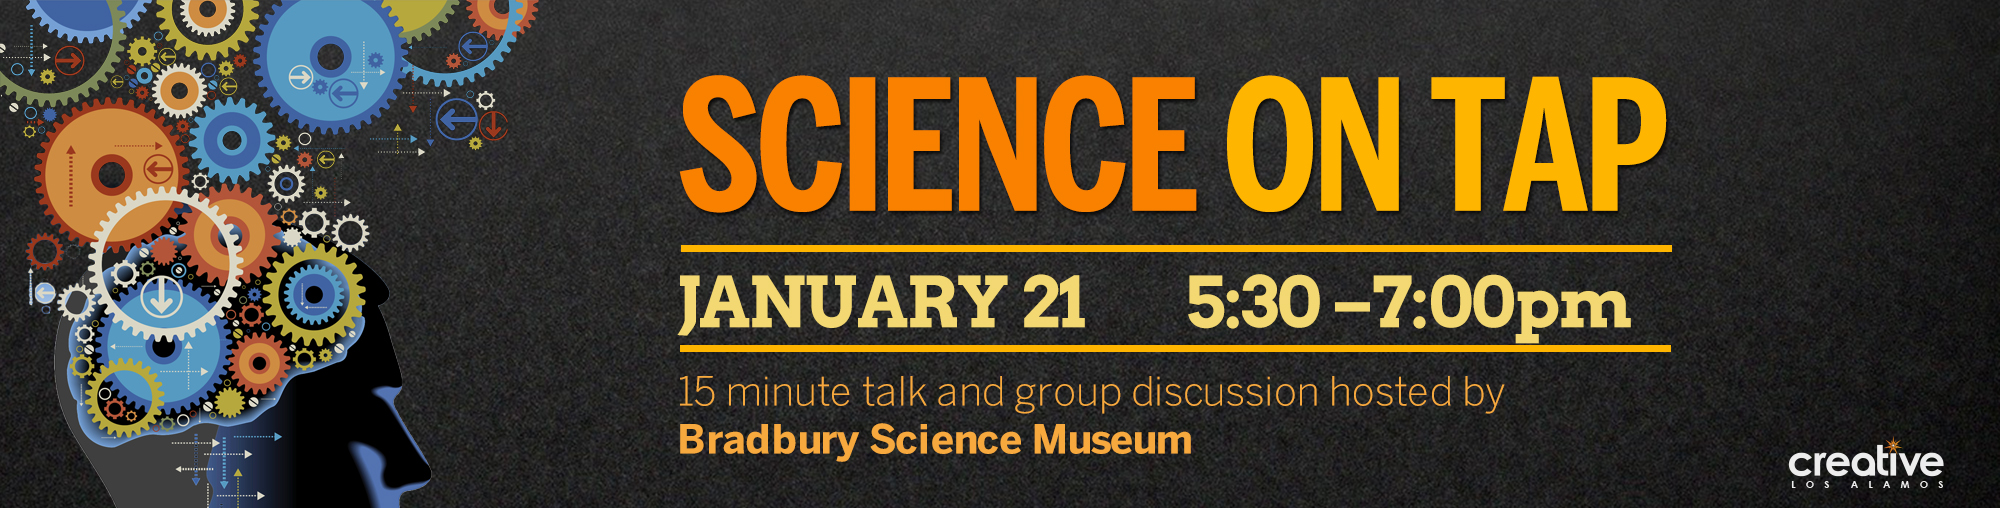 Science on Tap